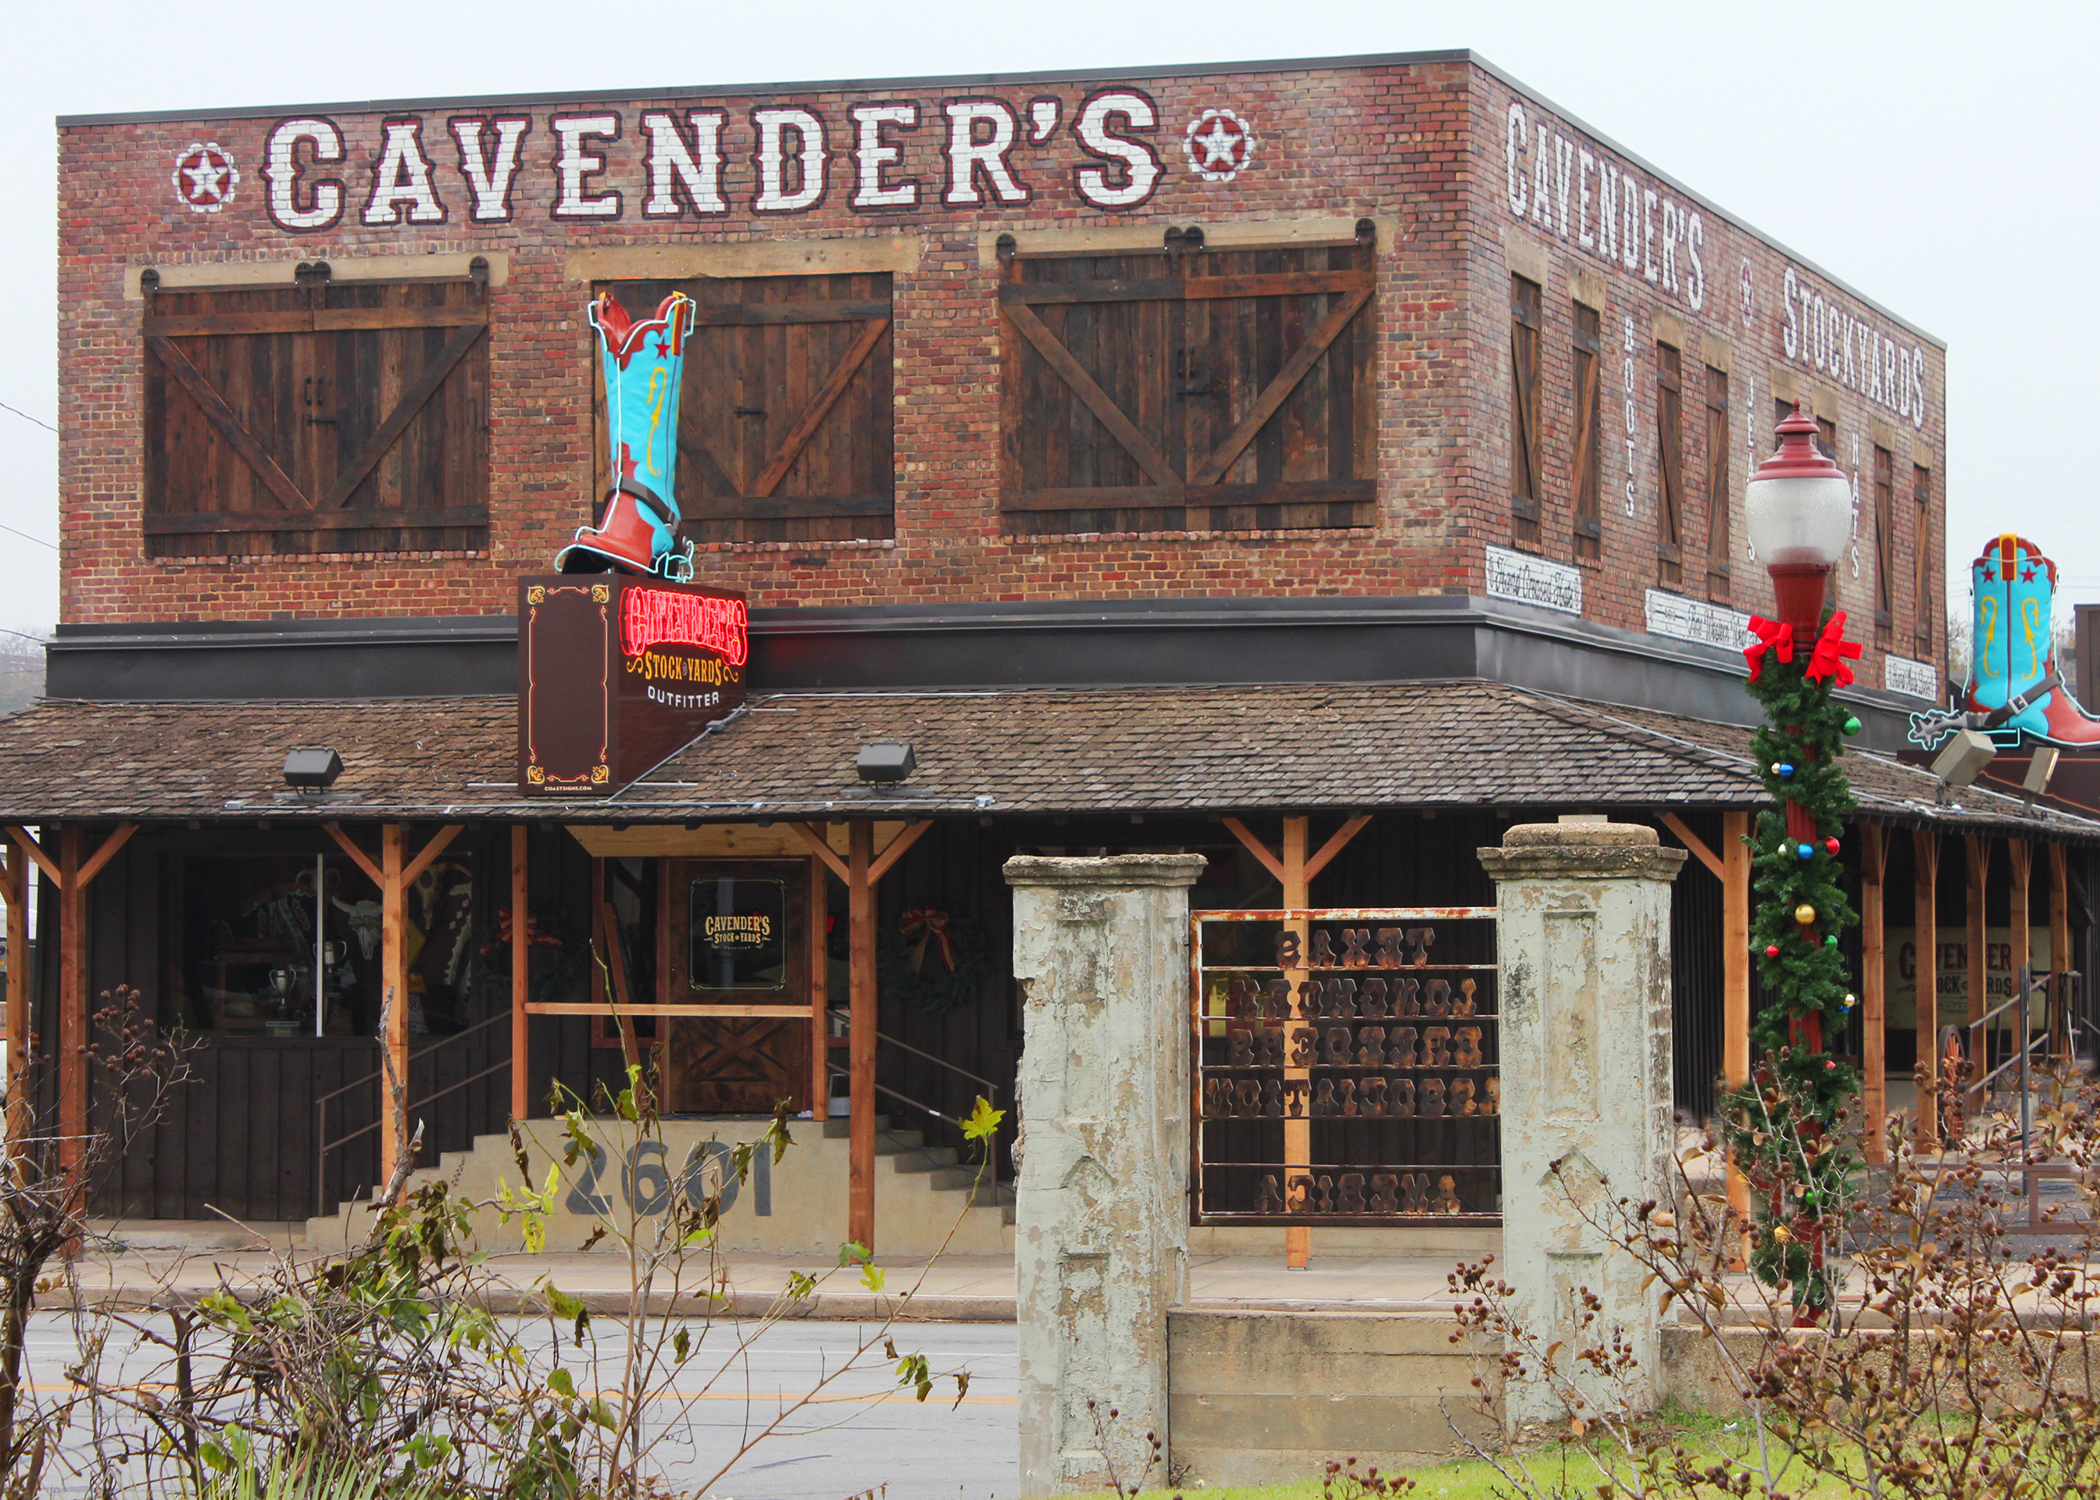 Cavender's Stock Yards